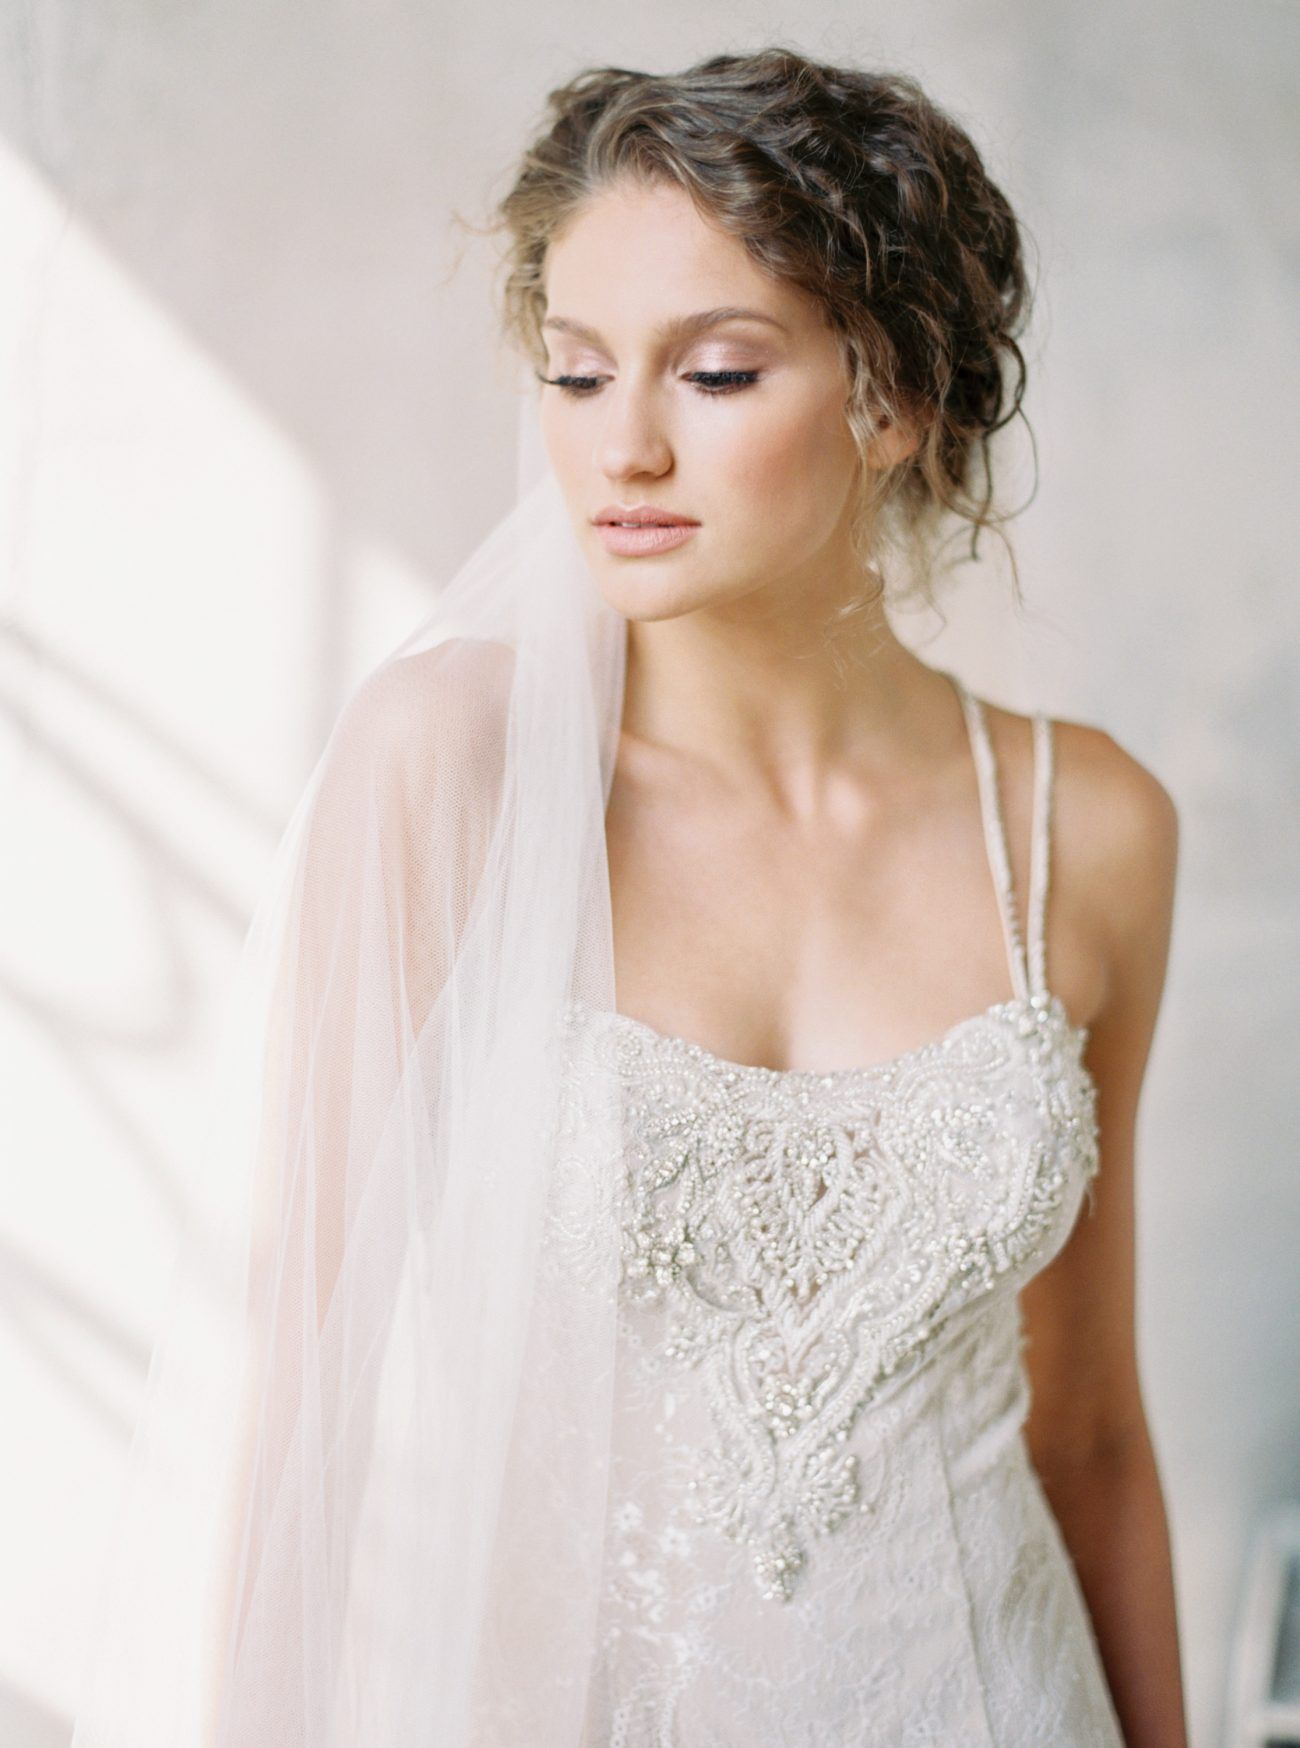 LisaCatherinePhotography_Bridal_01312